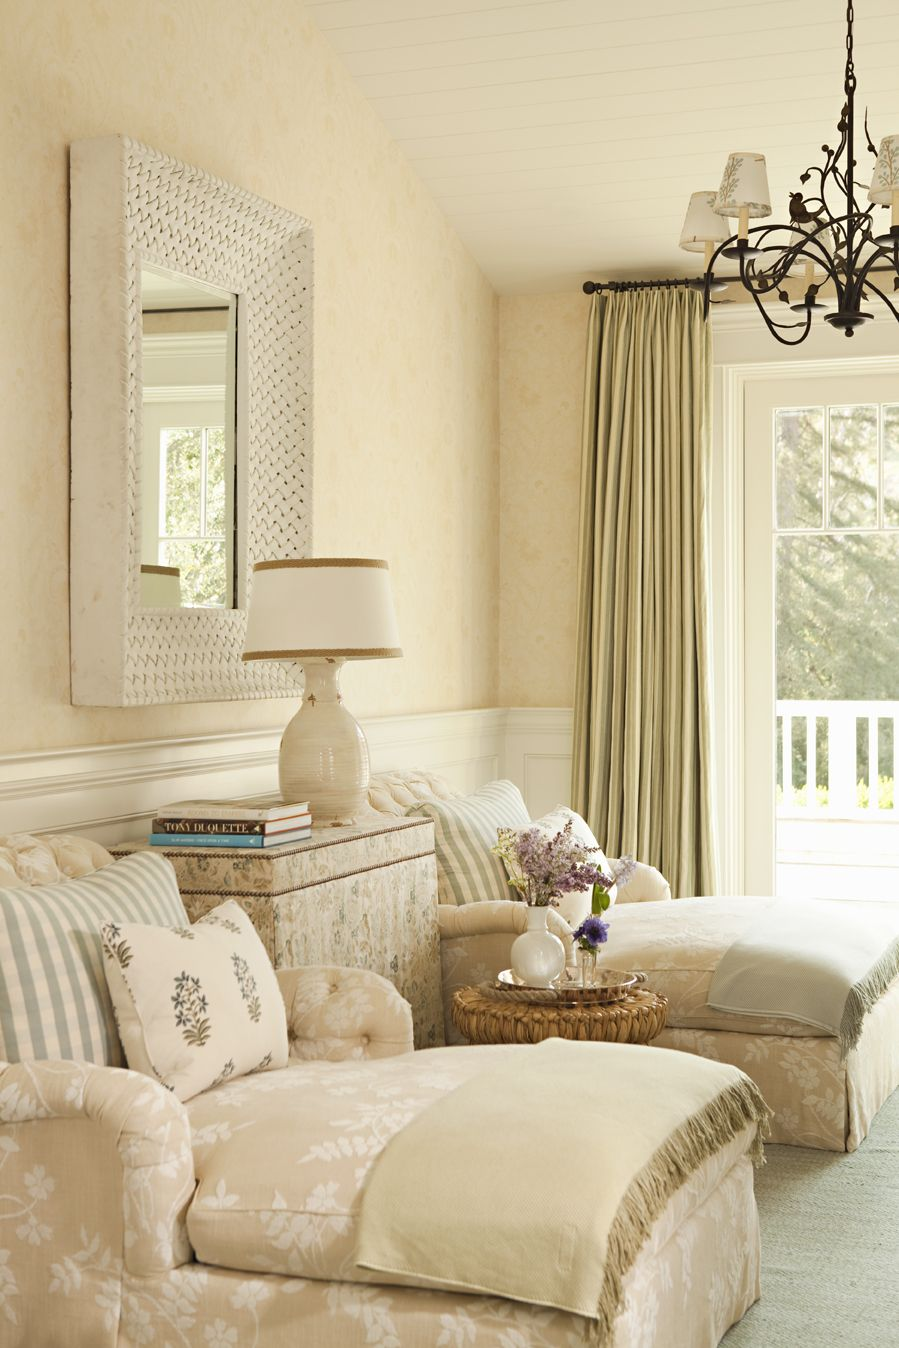 My favourite colour scheme/patterned fabric idea for the bedroom. I especially like the neutral colours of the walls, tapestry chairs and curtains. Would use this scheme in the bedroom. Something similar to the chair fabric could be made into a comforter cover. Lee Ann Thornton Design